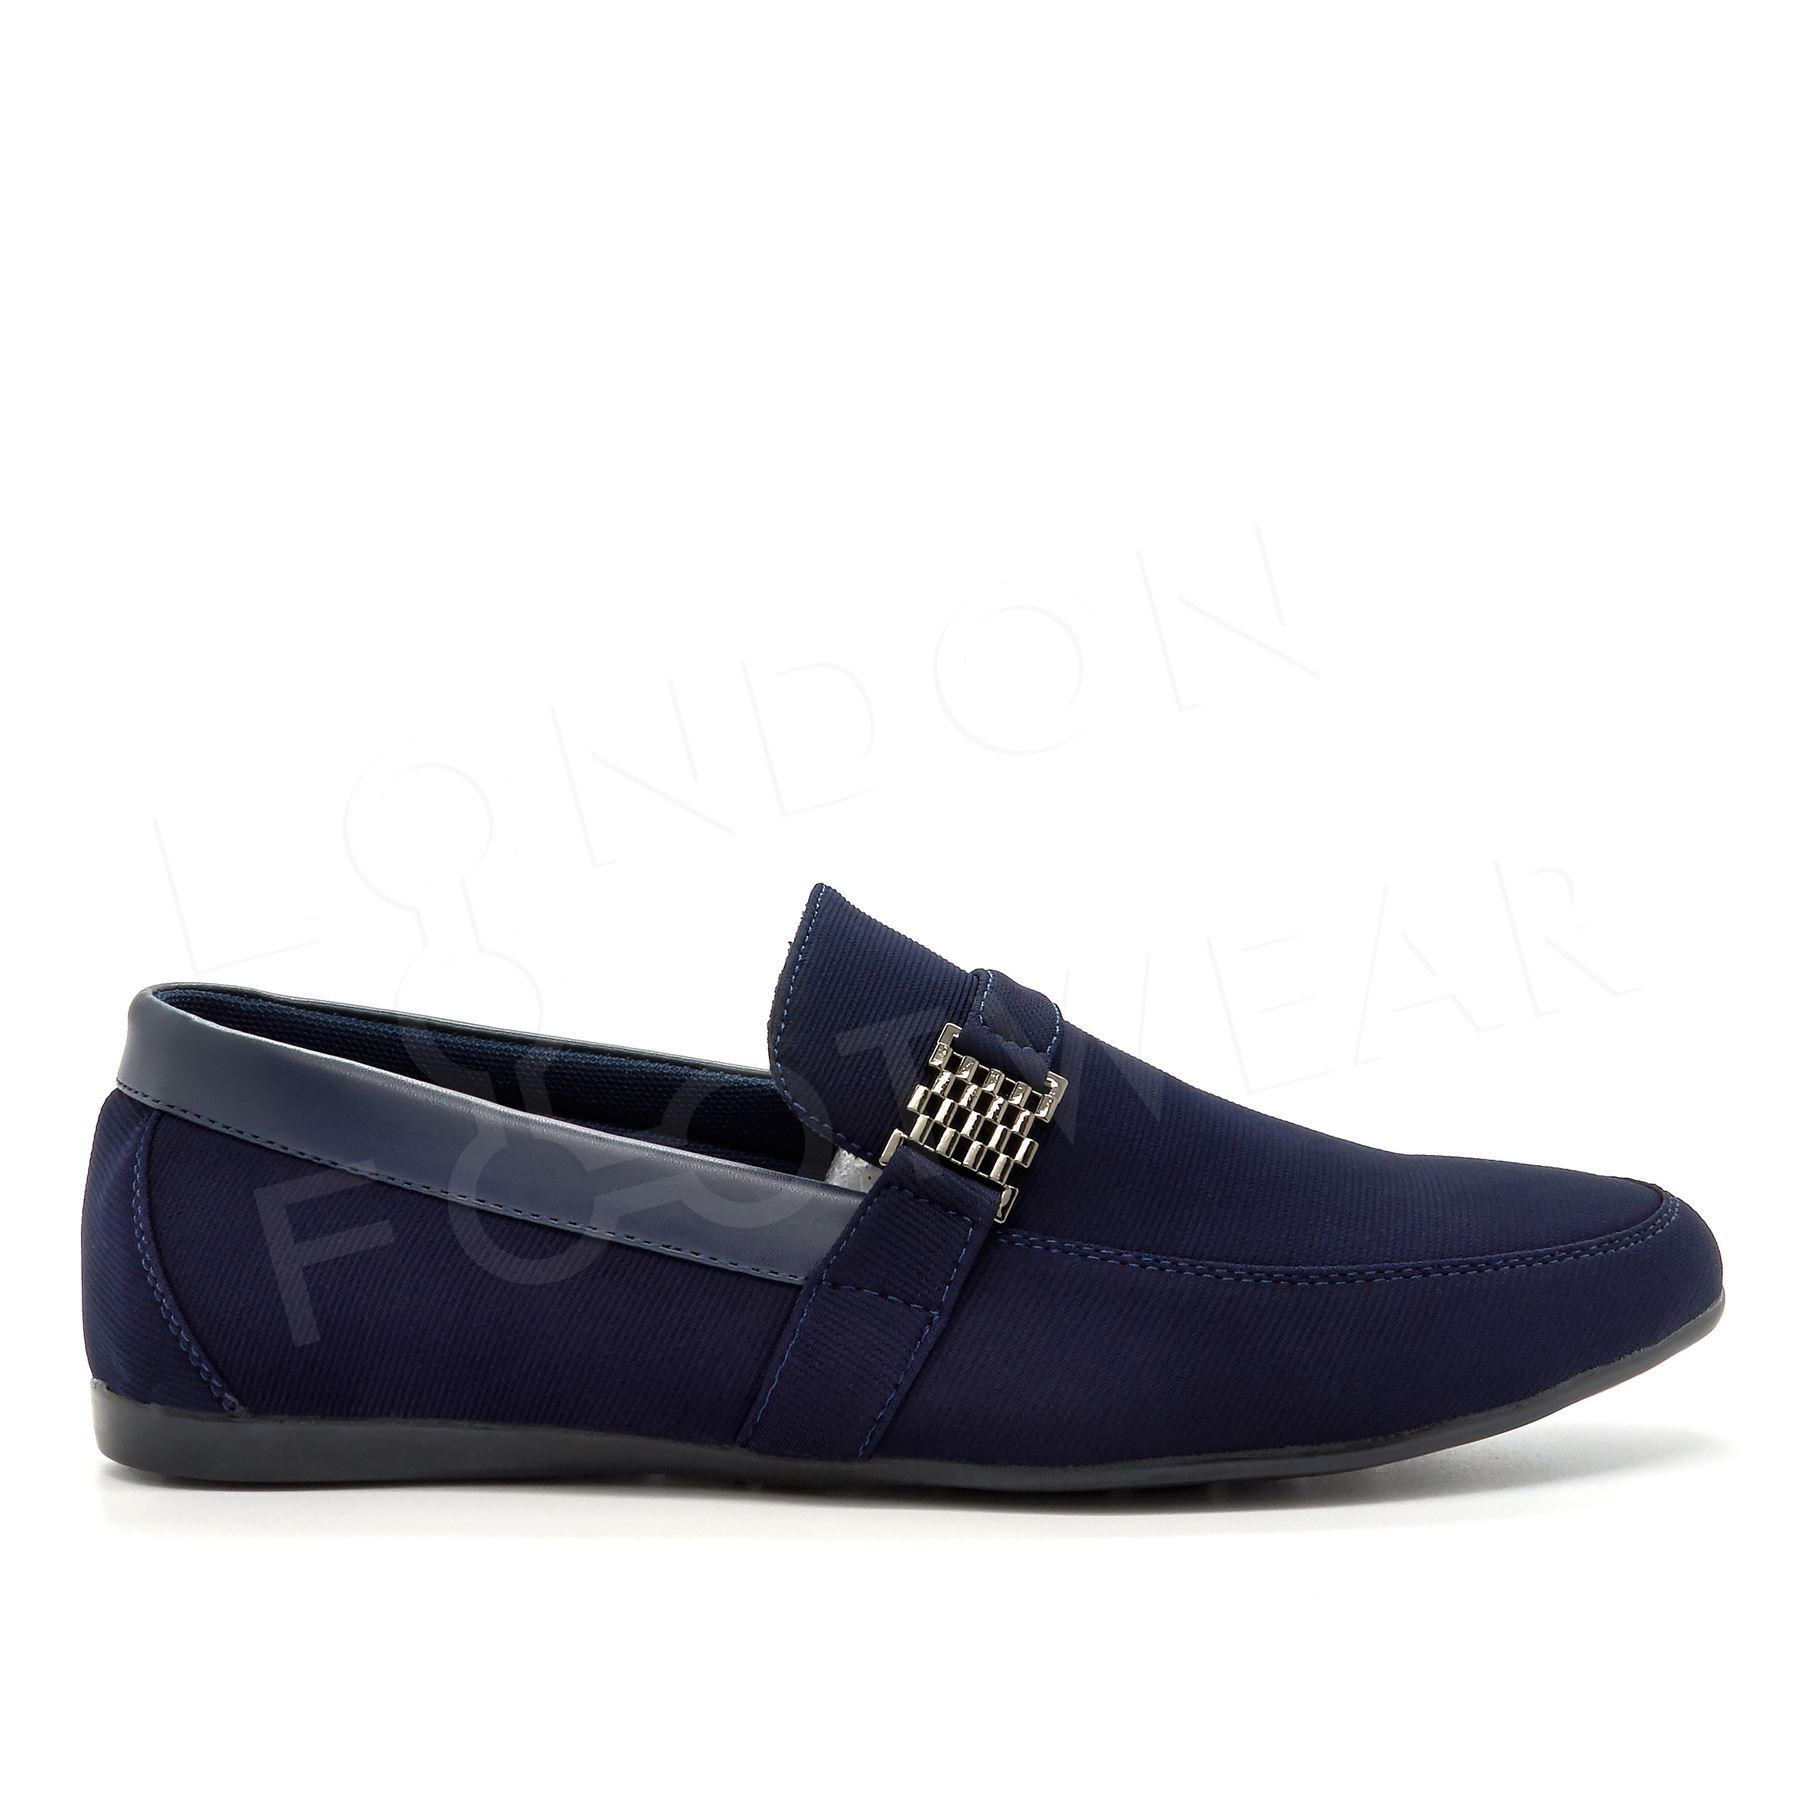 Mens Casual Loafers Smart Designer Slip On Shoes Driving